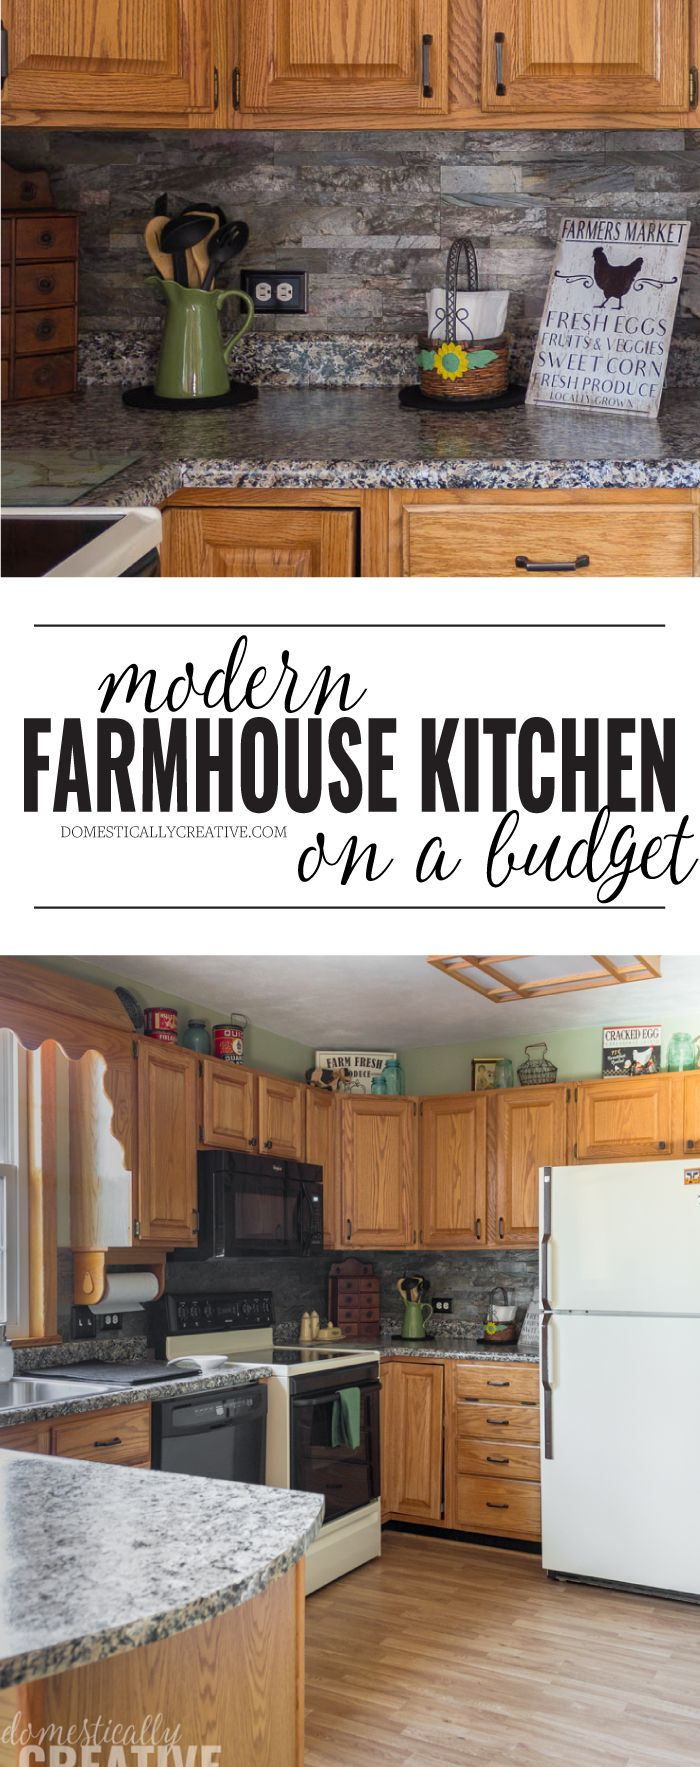 Modern Farmhouse Kitchen Makeover on a Budget